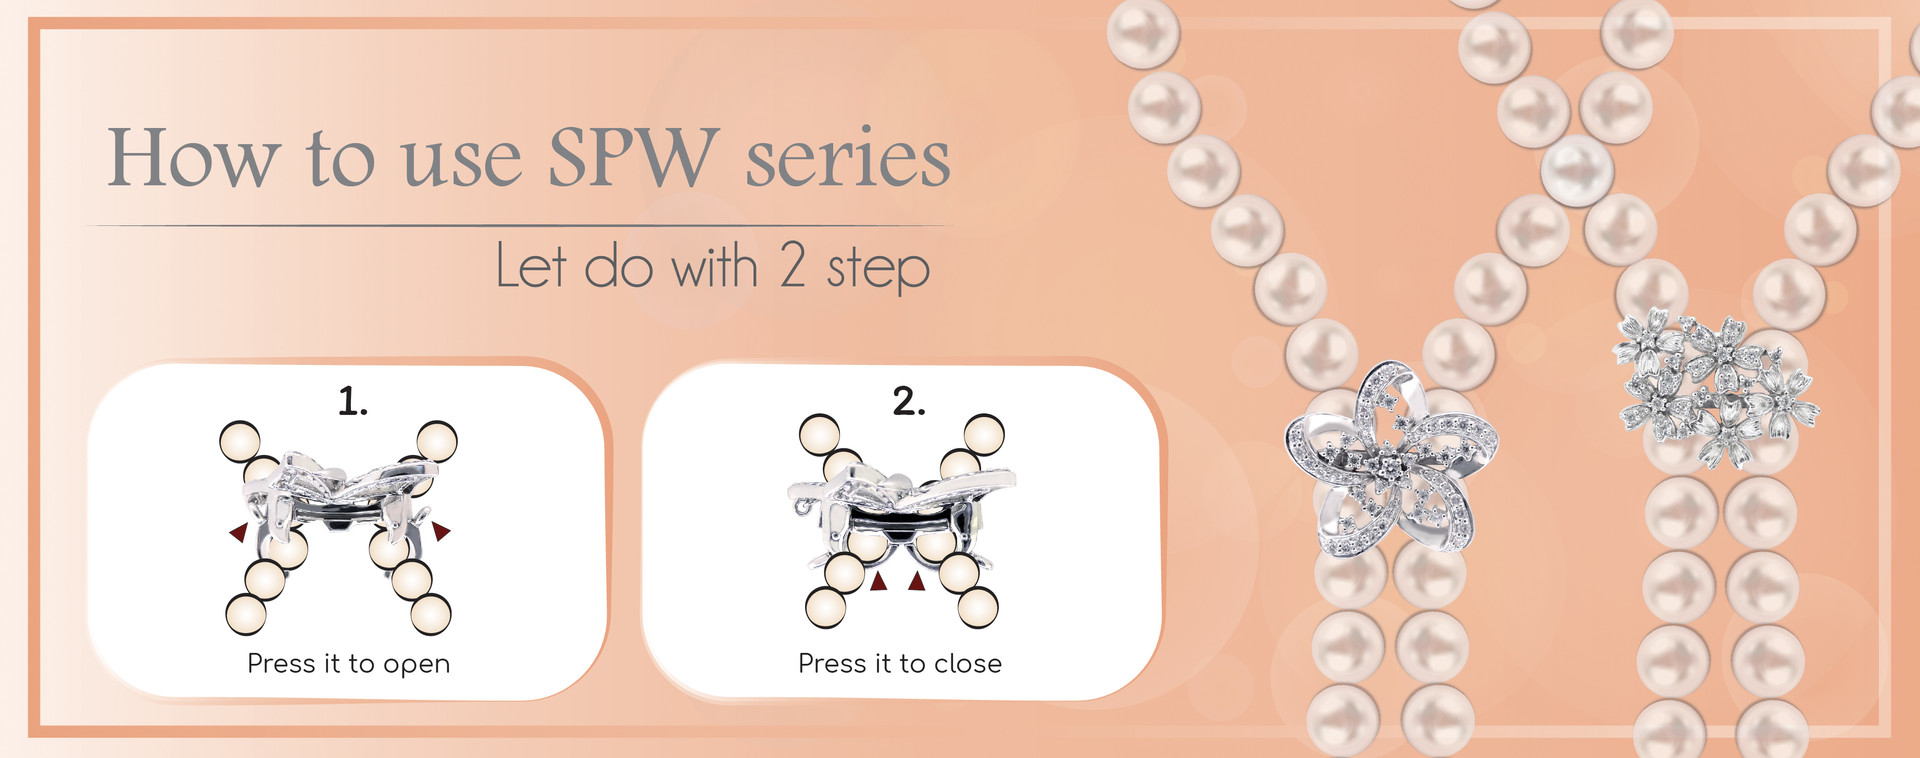 how to use SPW-03.jpg